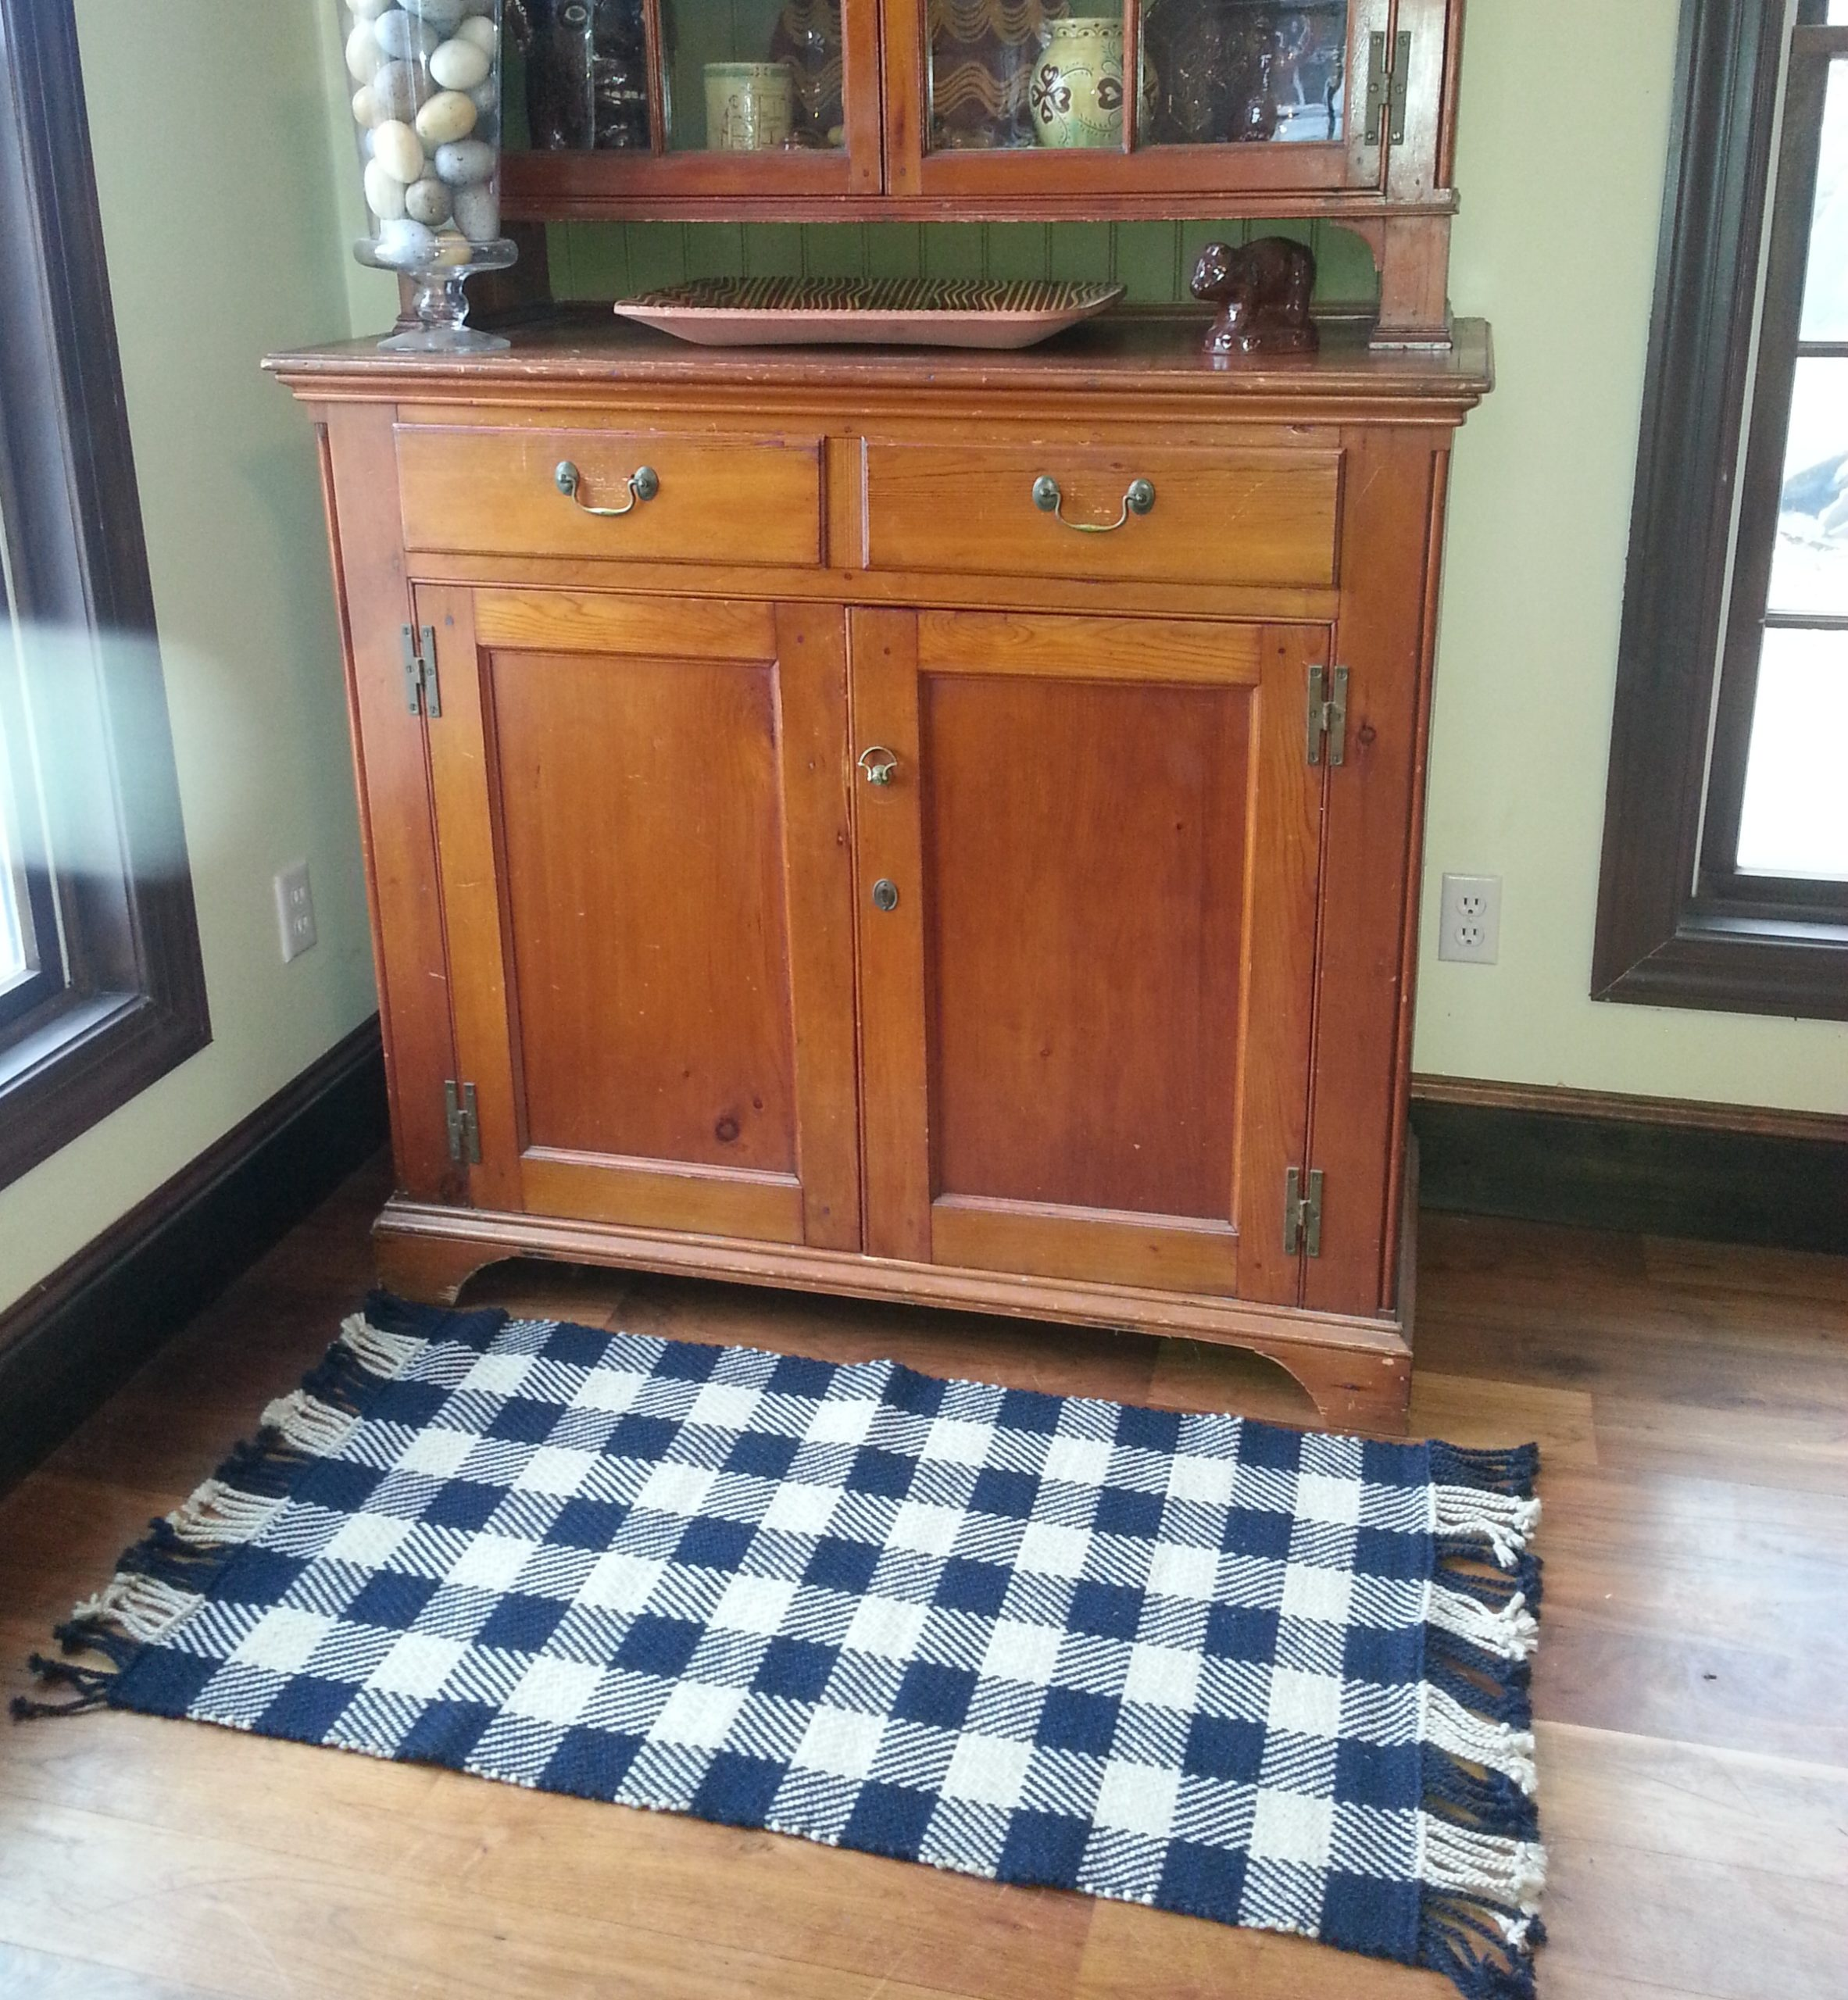 Checked Wool Rugs - Red Stone Glen